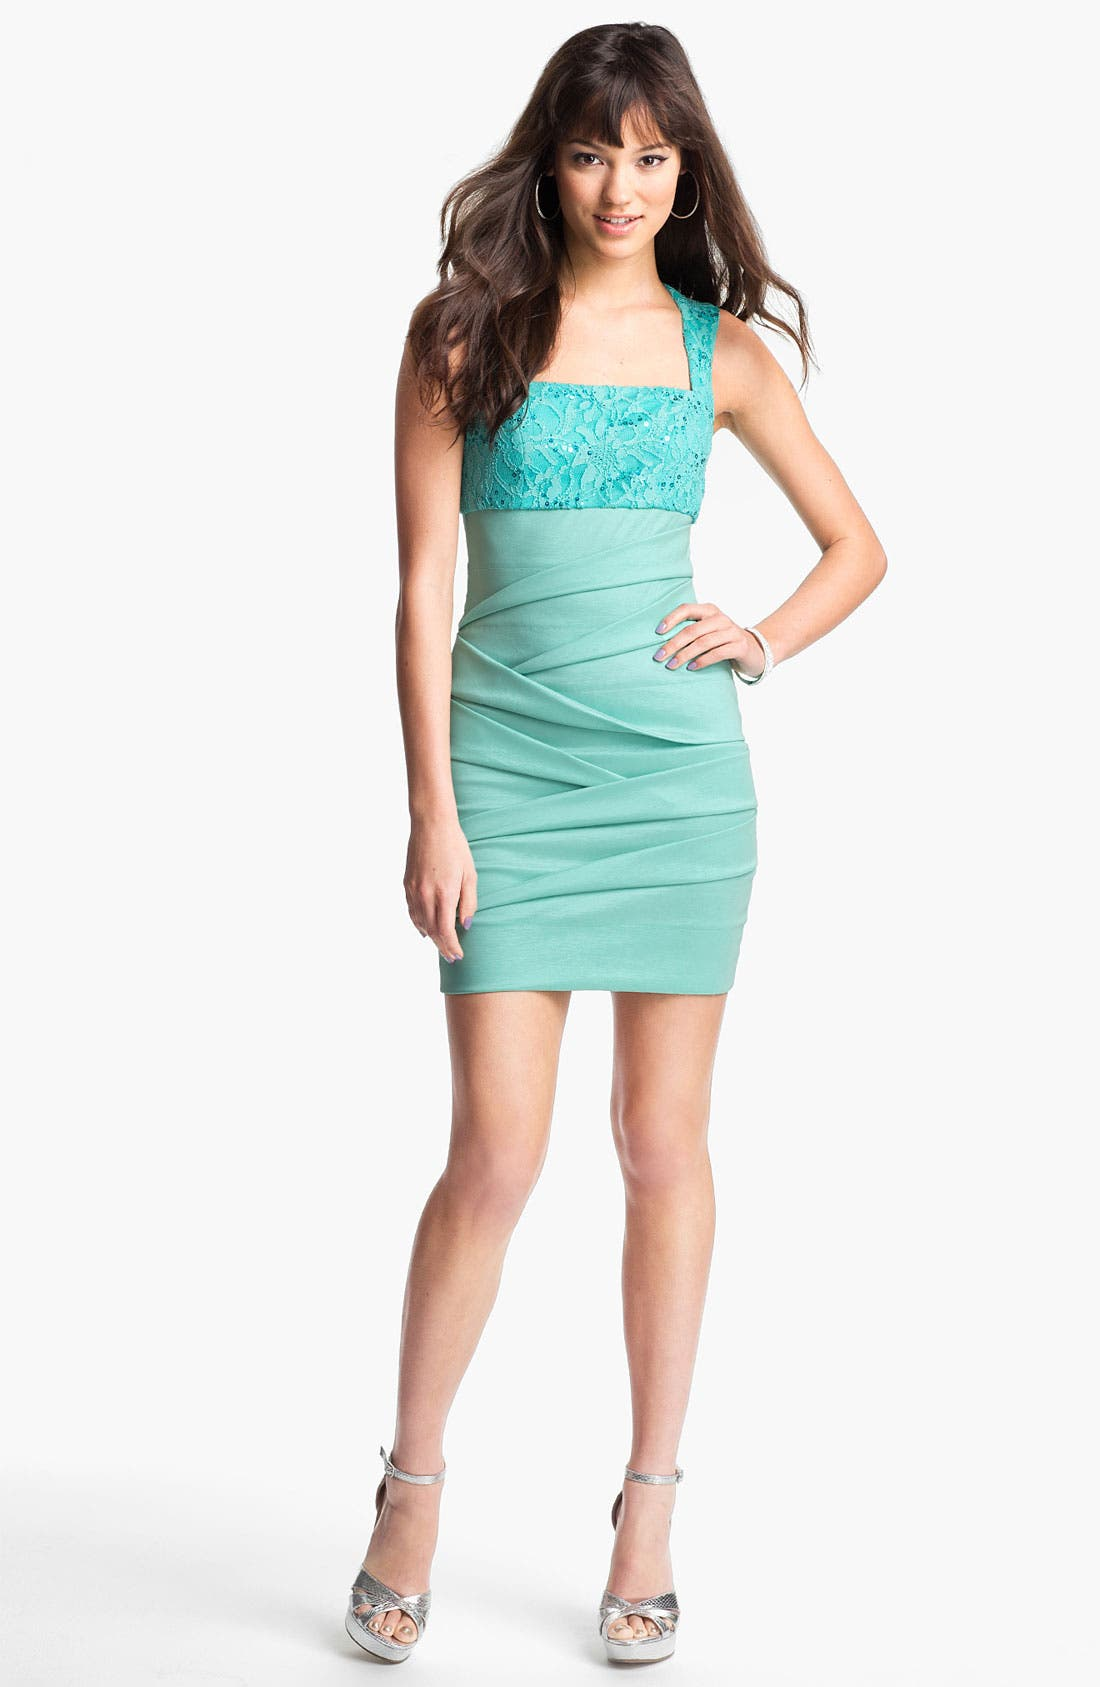 Alternate Image 1 Selected - Hailey Logan Lace & Sequin Body-Con Dress (Juniors) (Online Exclusive)